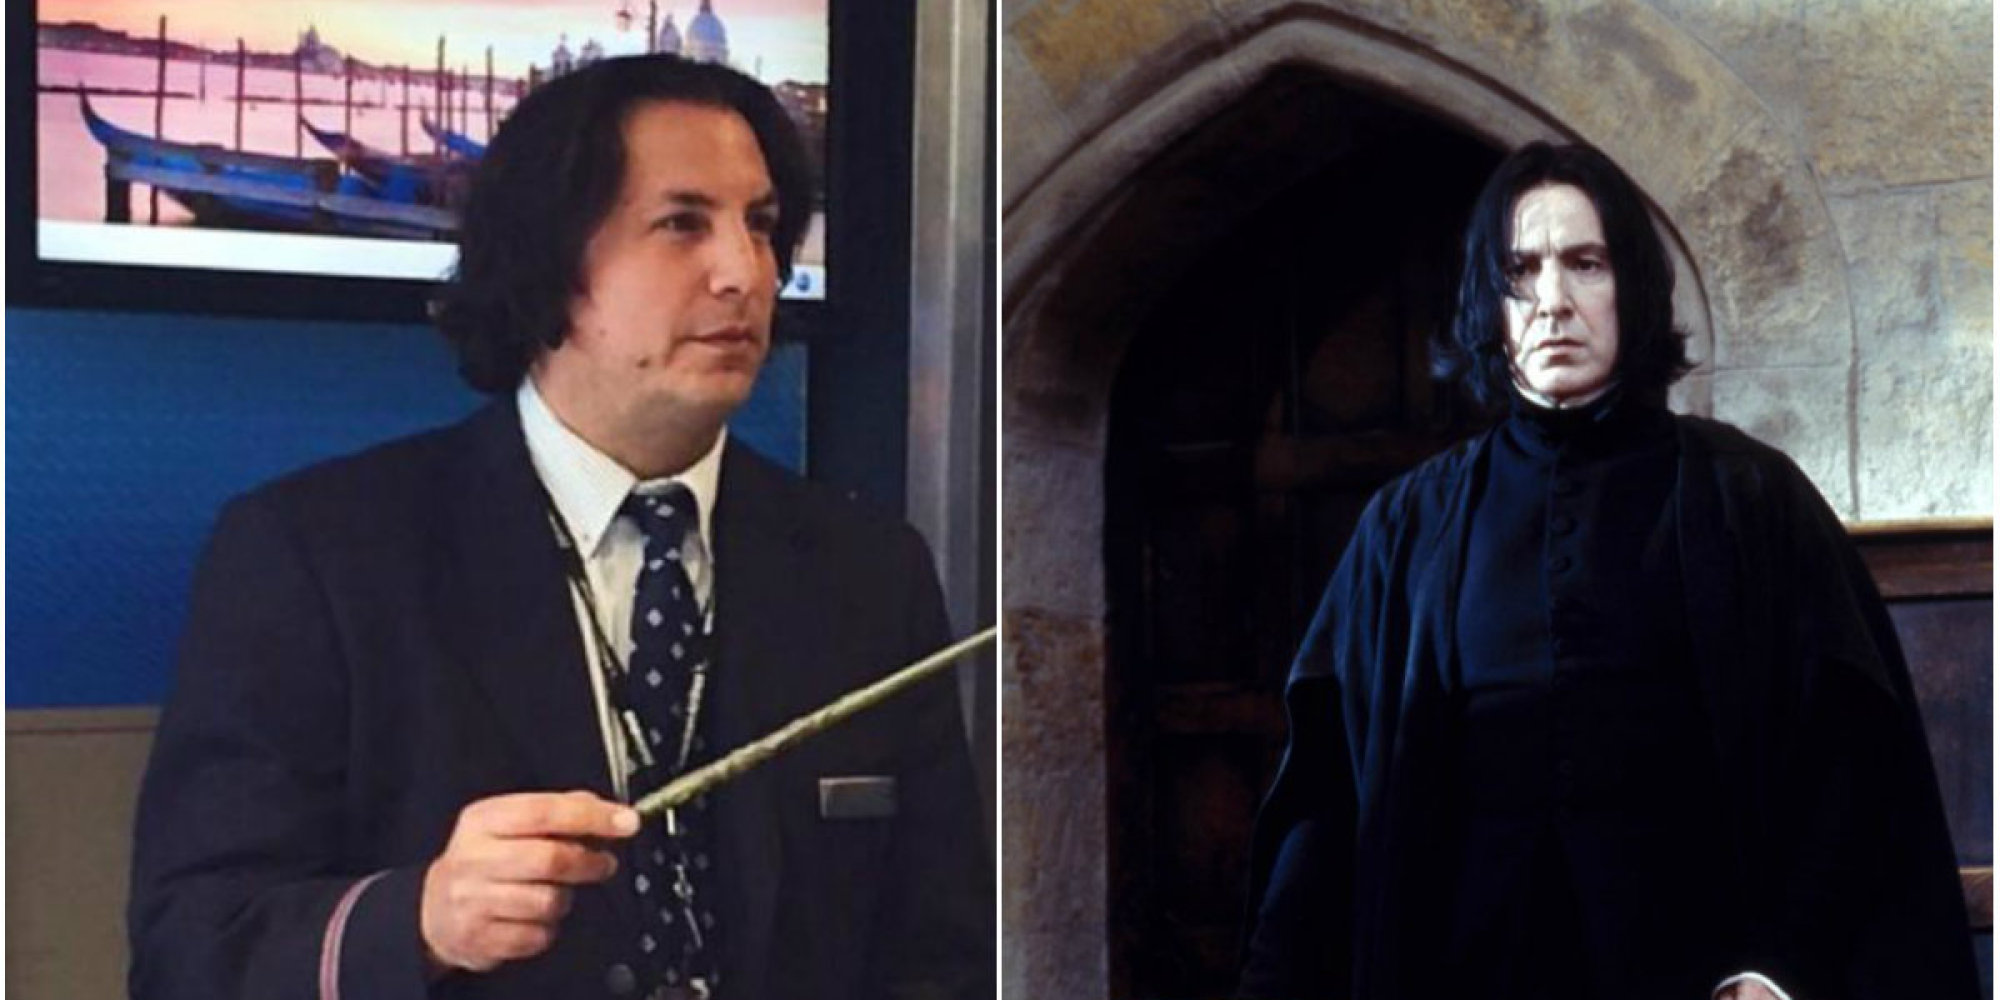 Snape From Harry Potter Now Works For American Airlines